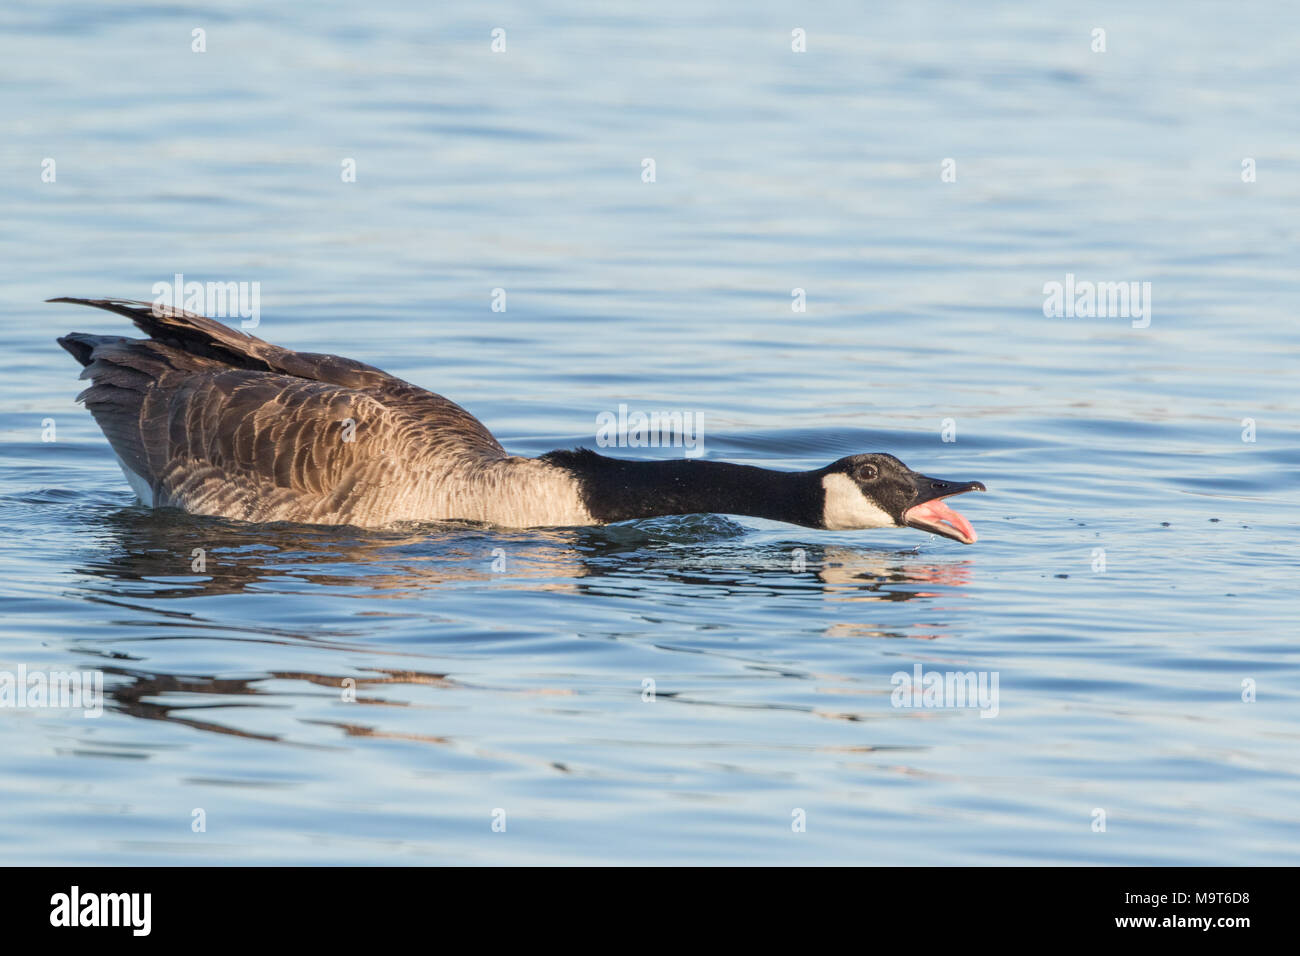 An agitated Canada goose on water. - Stock Image